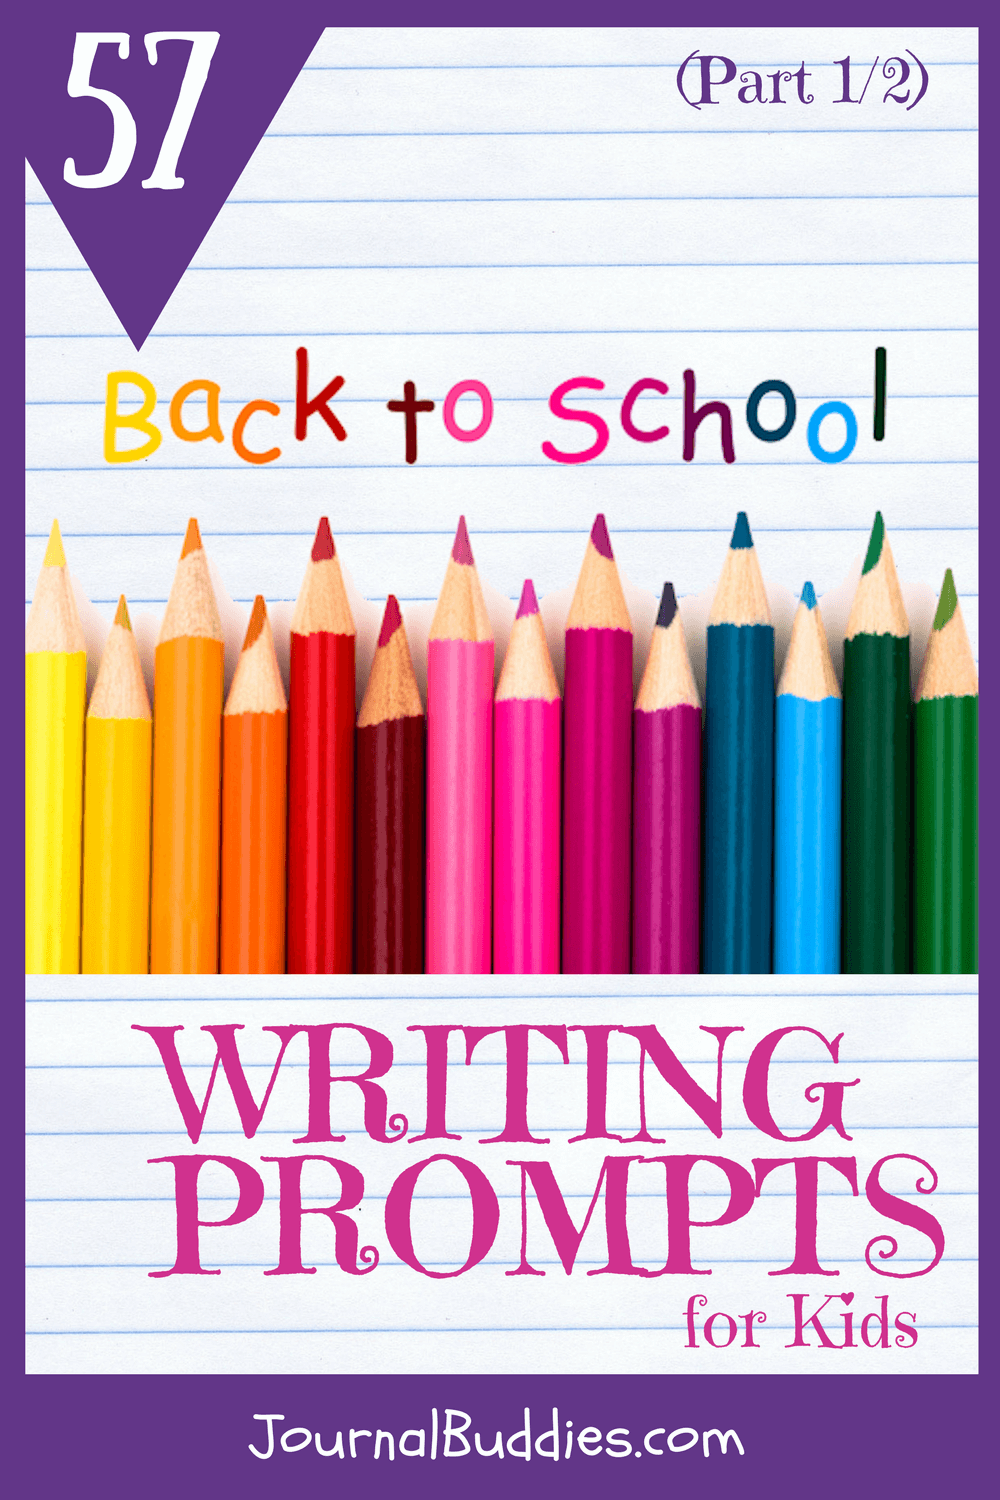 Get the school year started off right with these back to school journal prompts. You'll encourage your students to reflect and prepare for their best year yet!